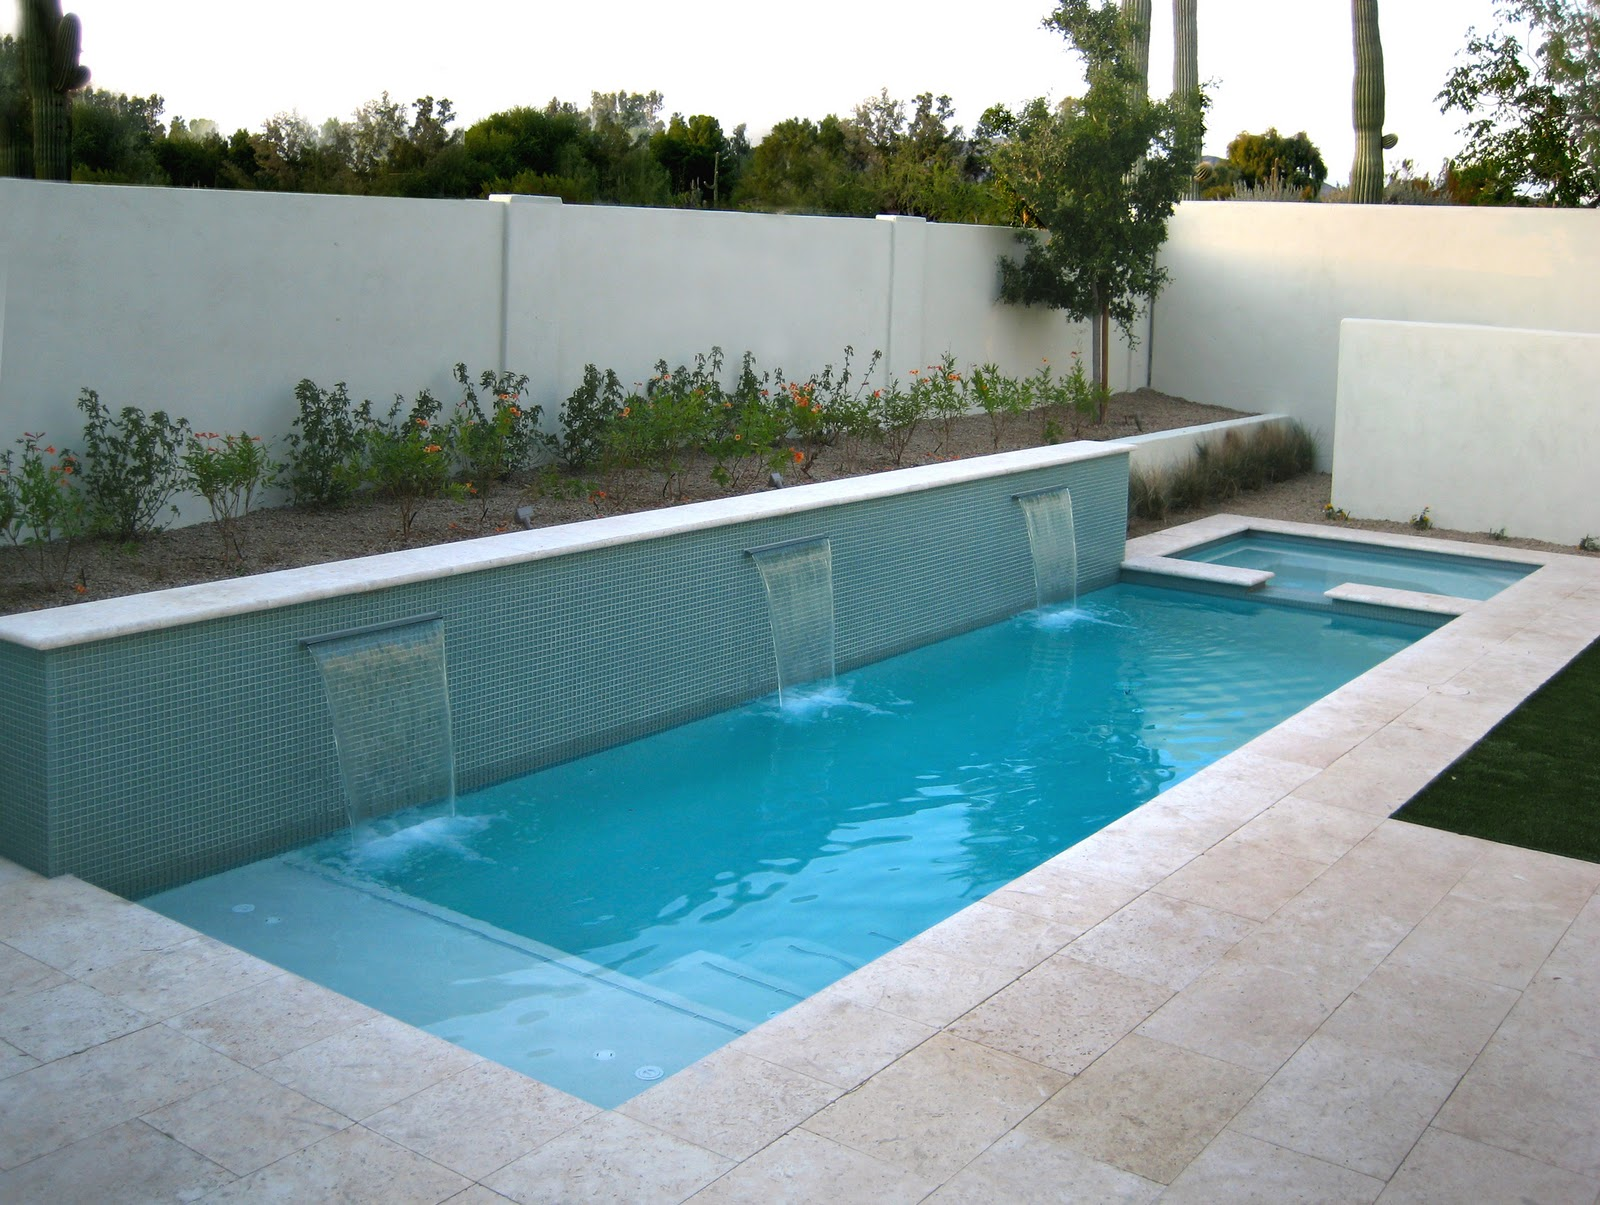 Alpentile Glass Tile Swimming Pools: Water Feature, or ...